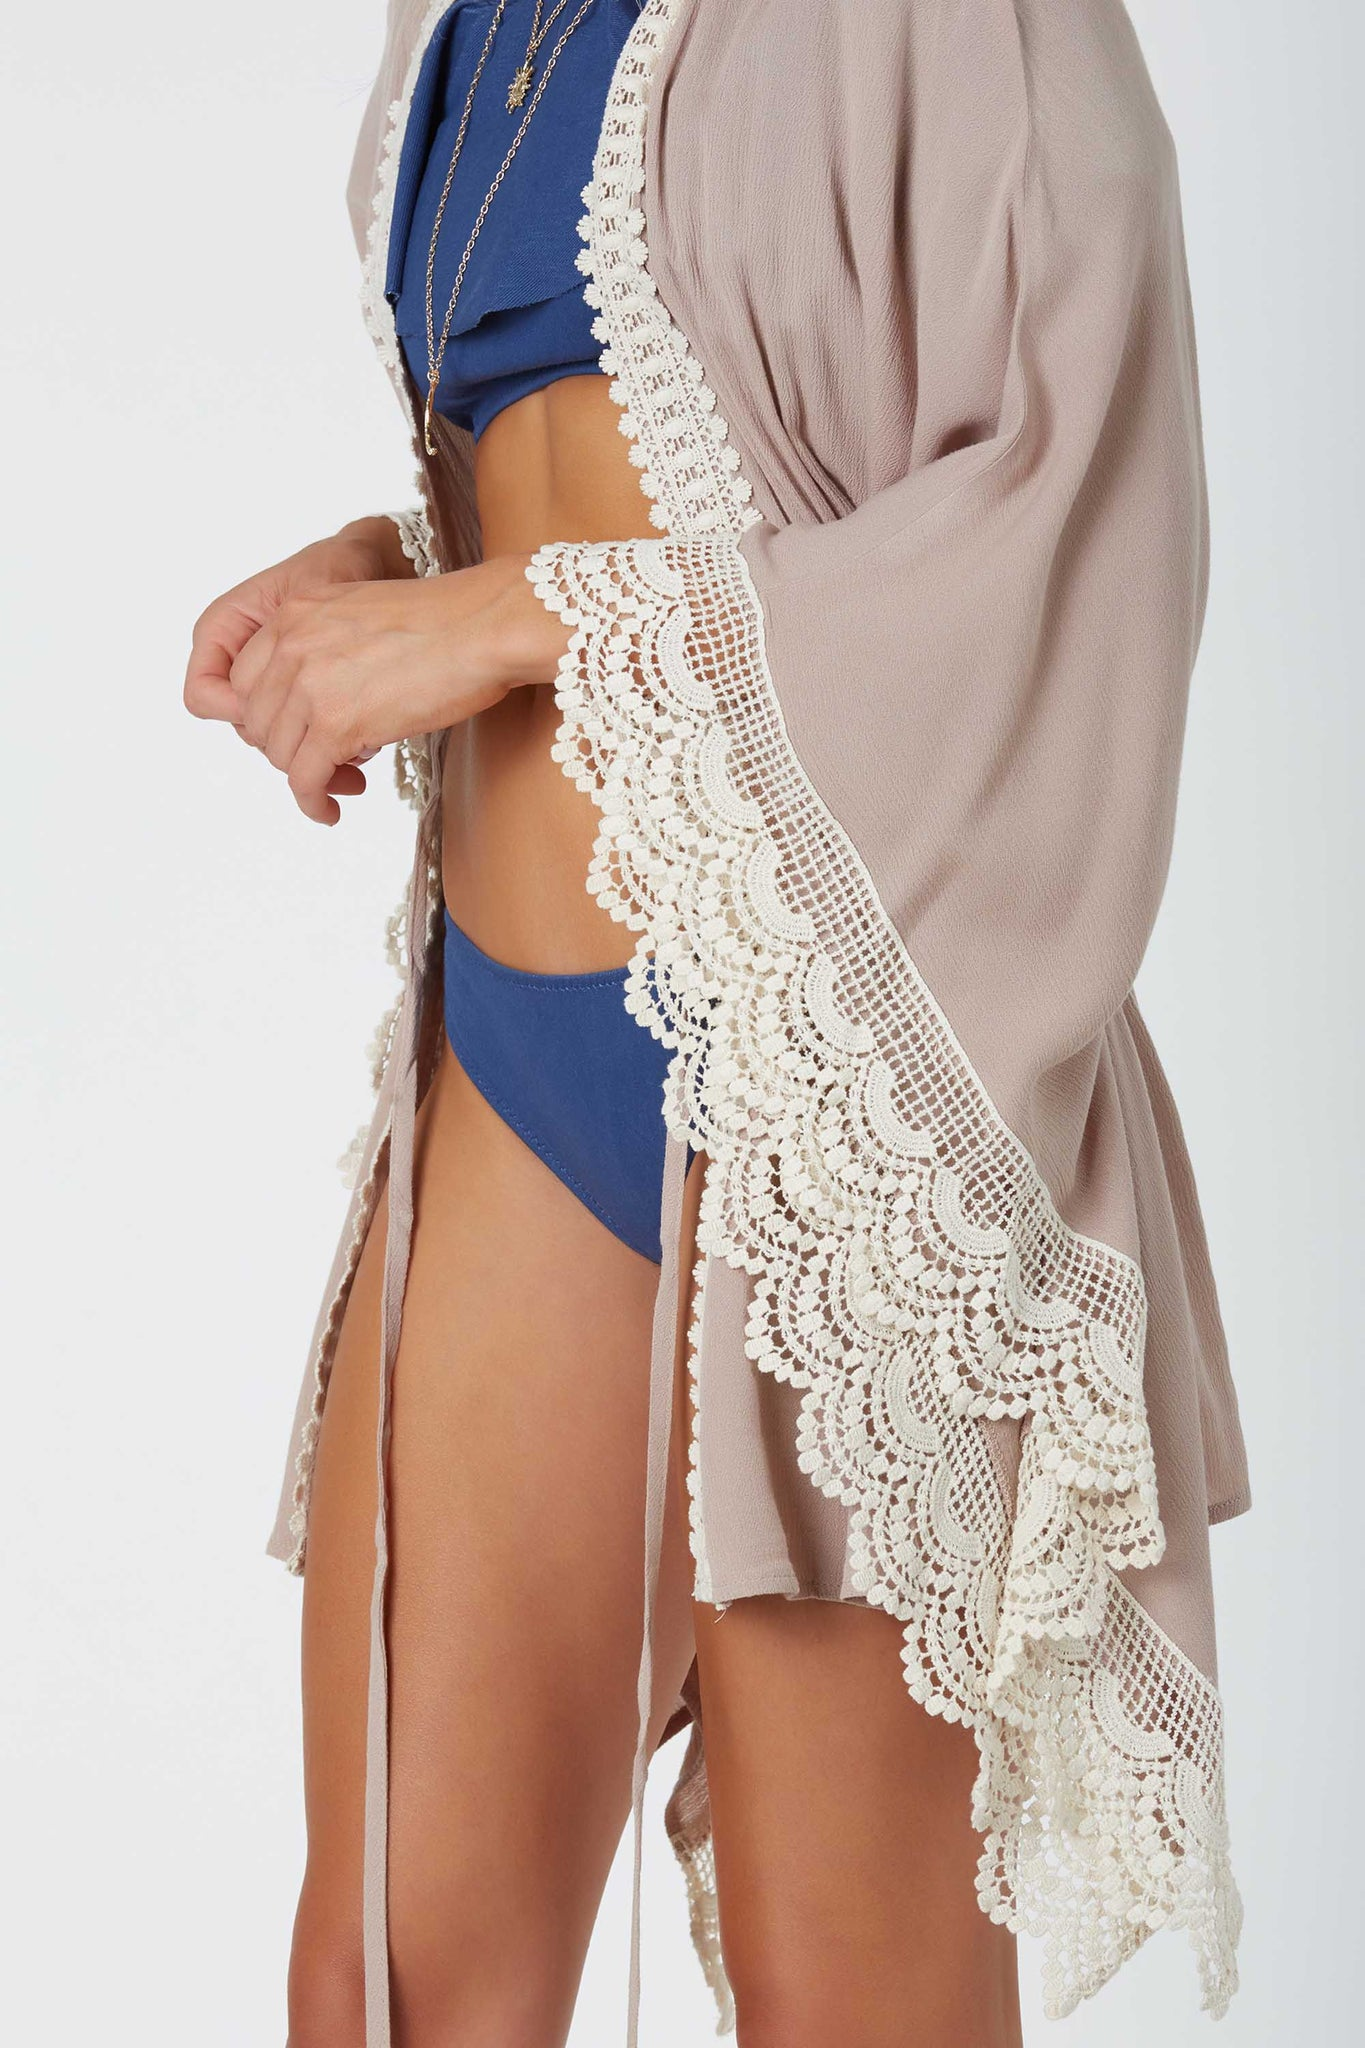 Boho-chic open front kimono with intricate crochet trim detailing. Boxy sleeves with center tie for closure.